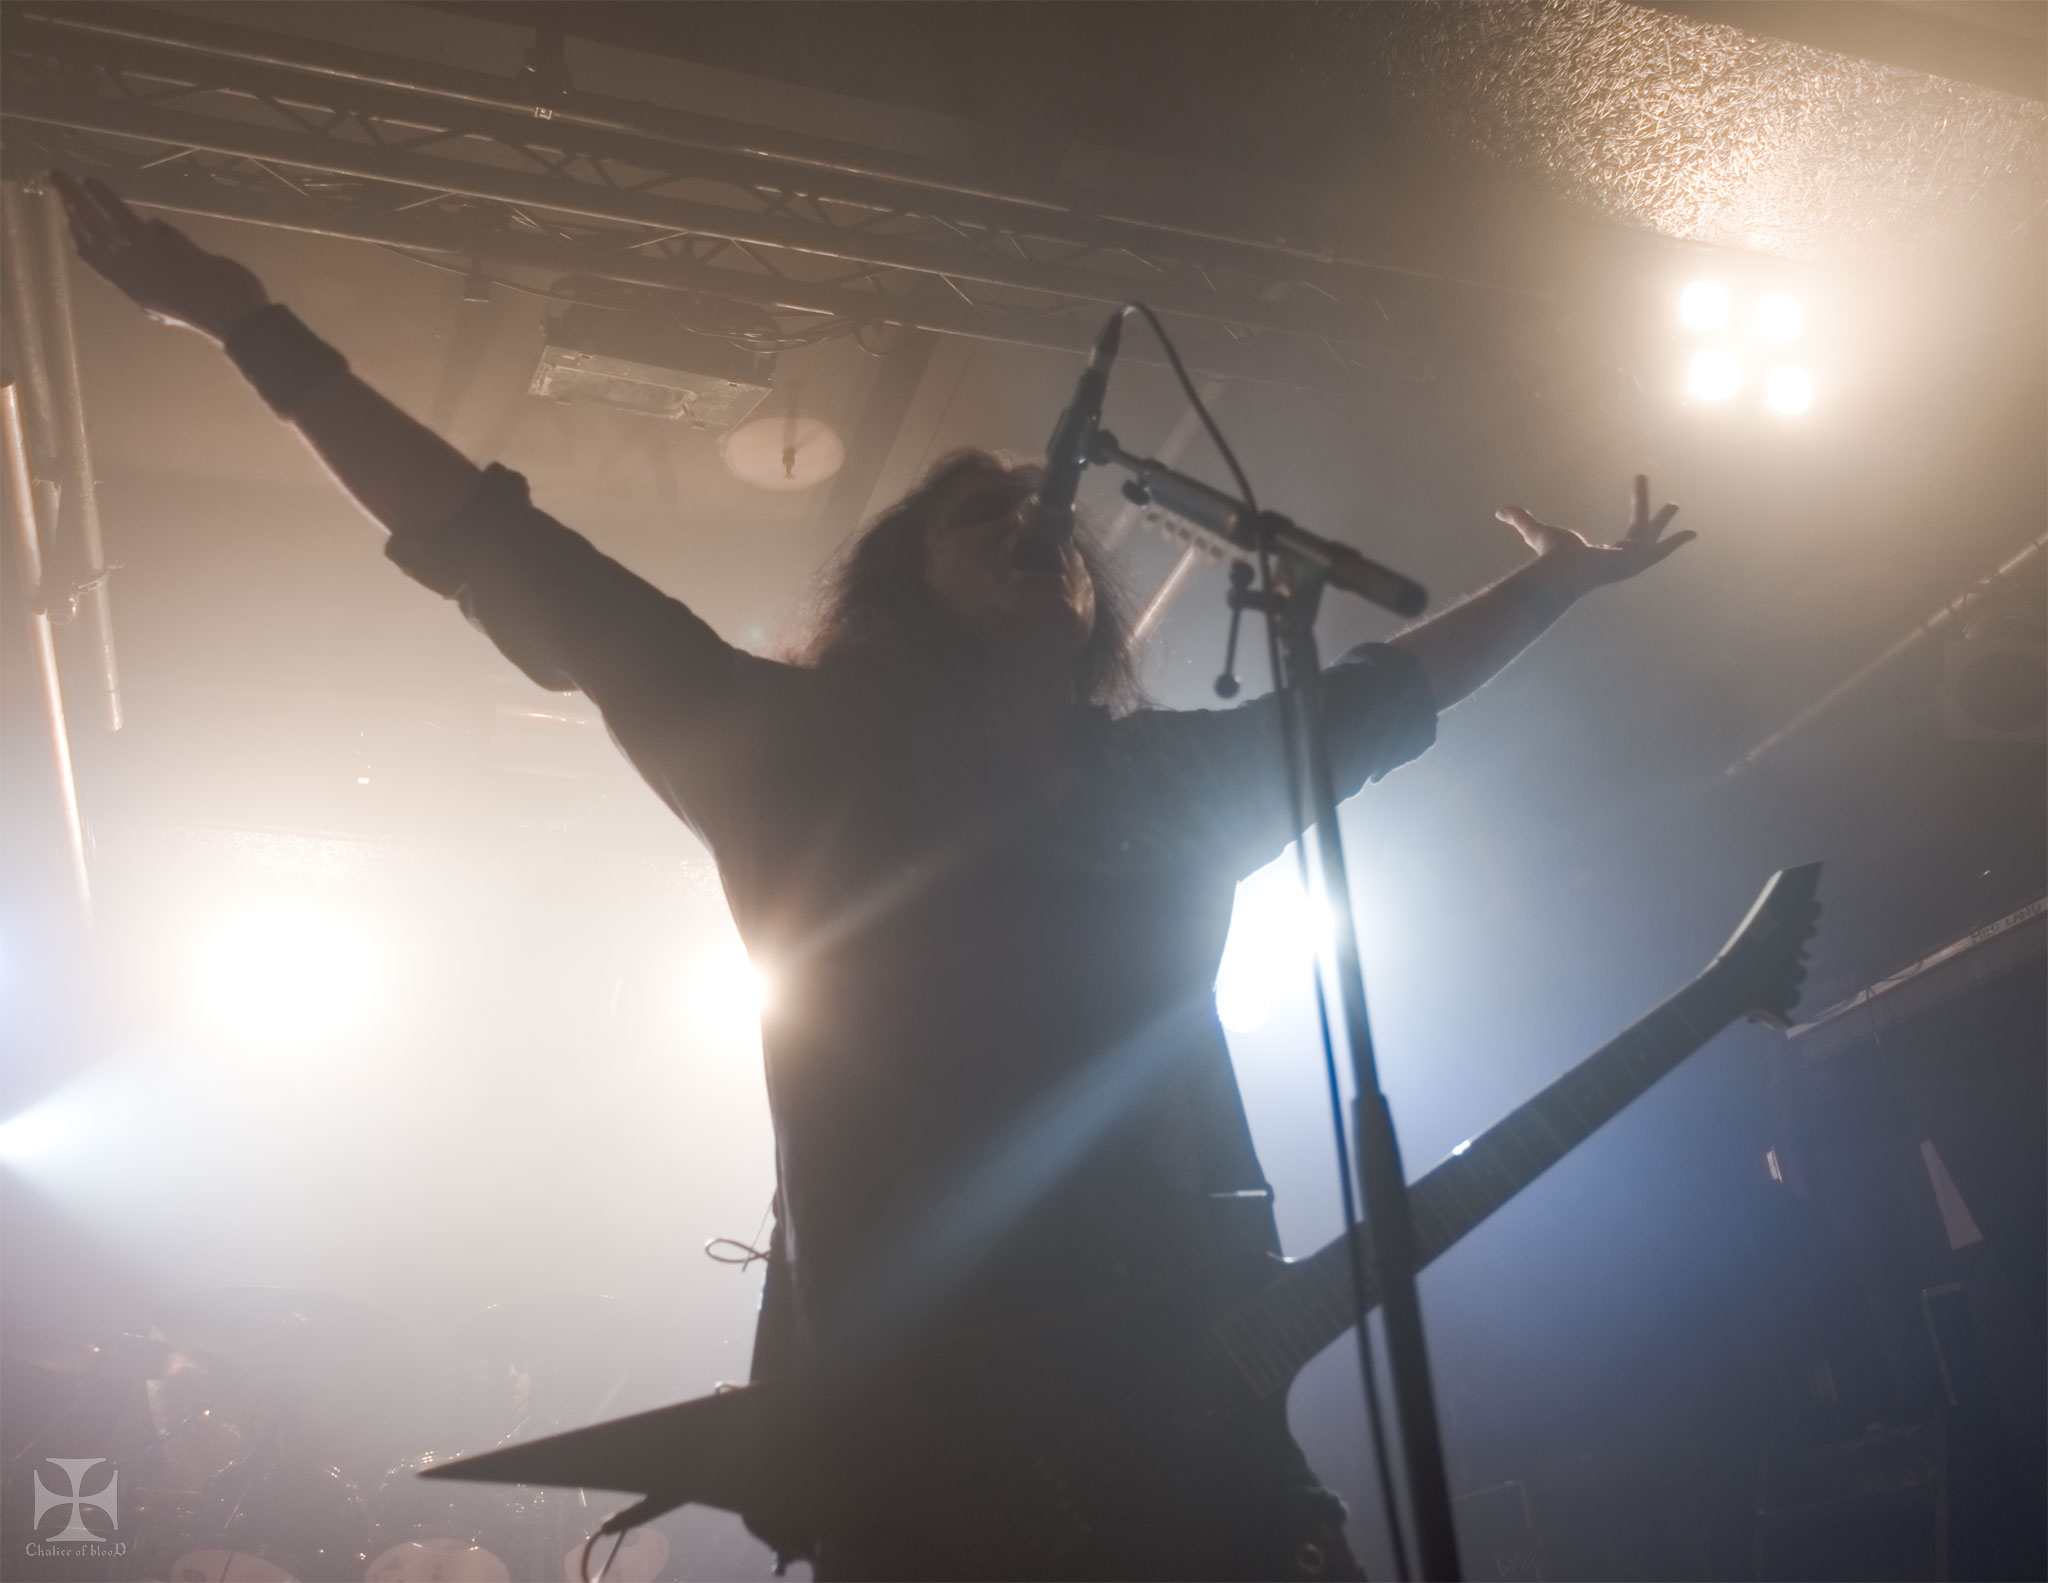 Kreator-0045-Exposure-watermarked.jpg